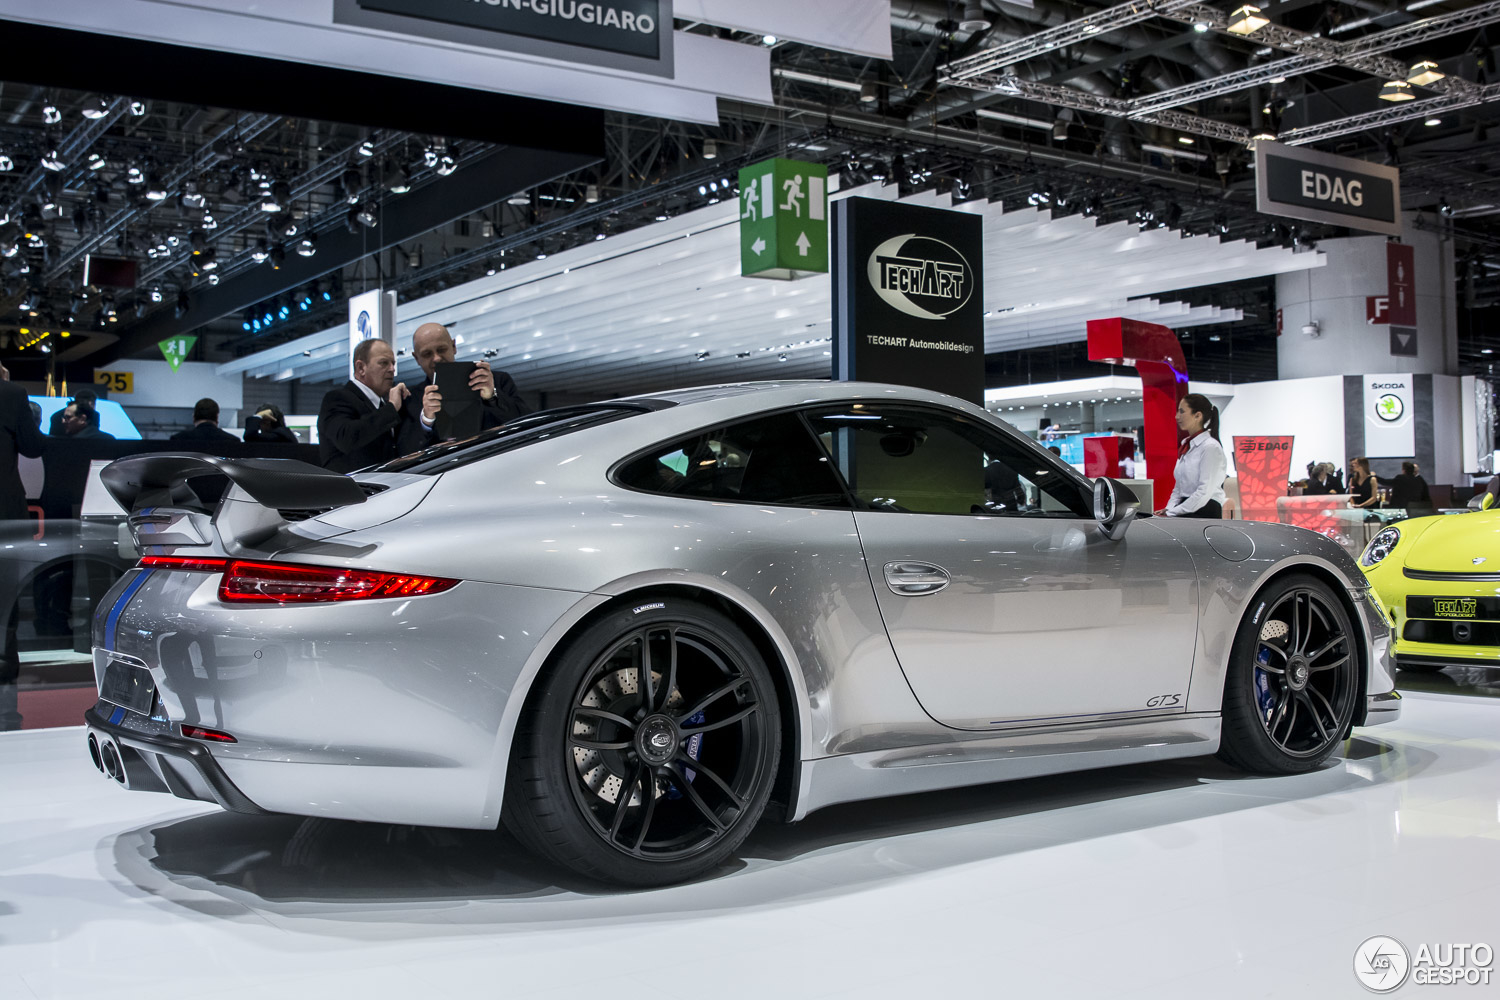 Geneva 2015 Techart 991 Carrera Gts